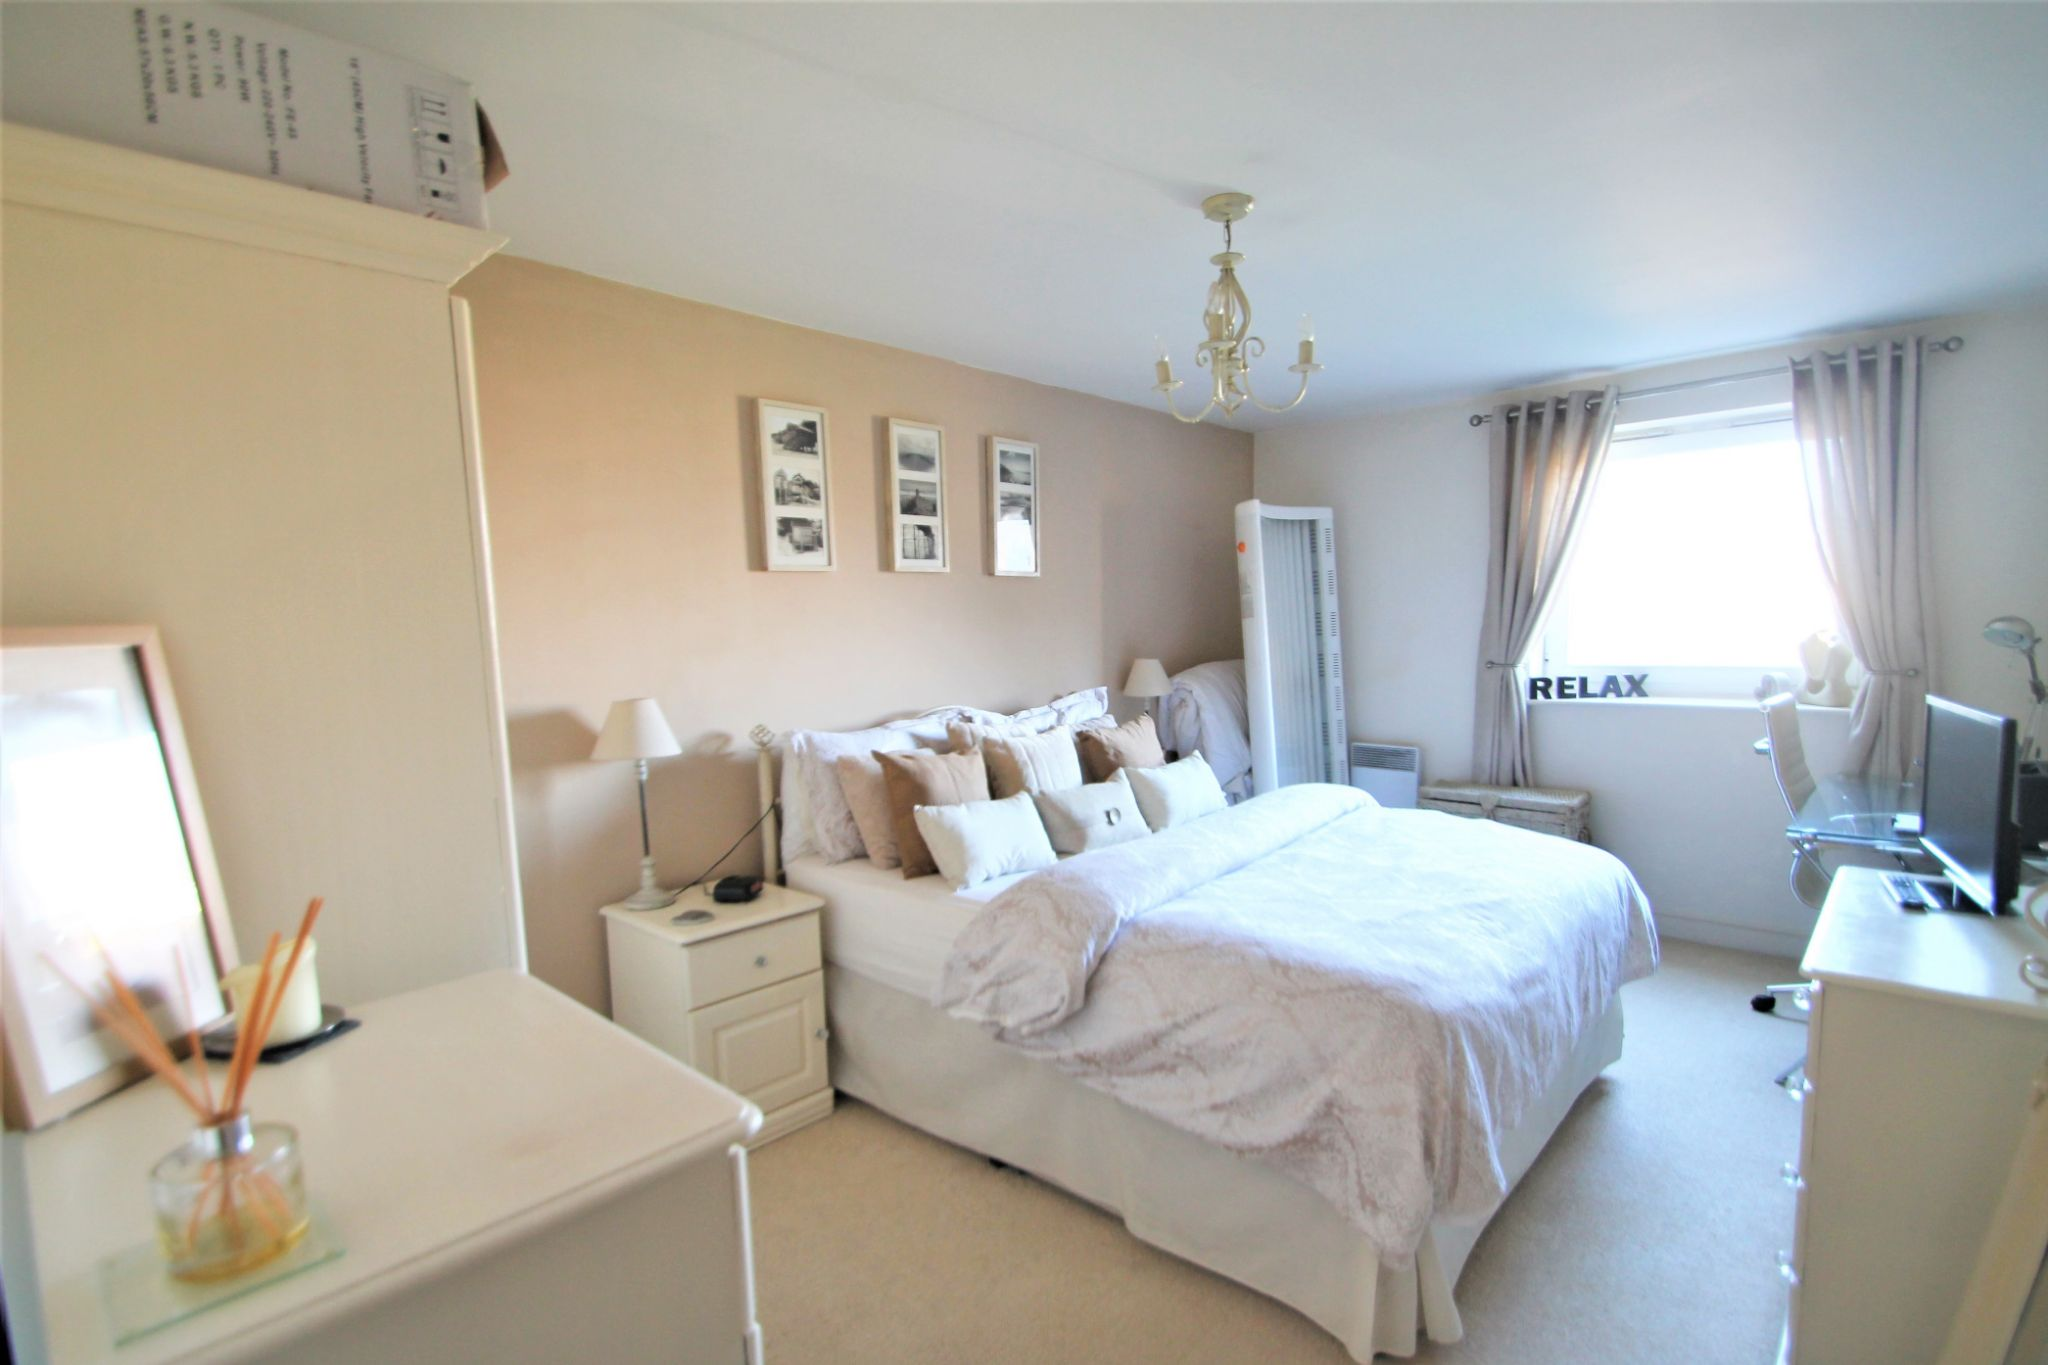 1 Bedroom Flat Flat/apartment For Sale - Master Bedroom